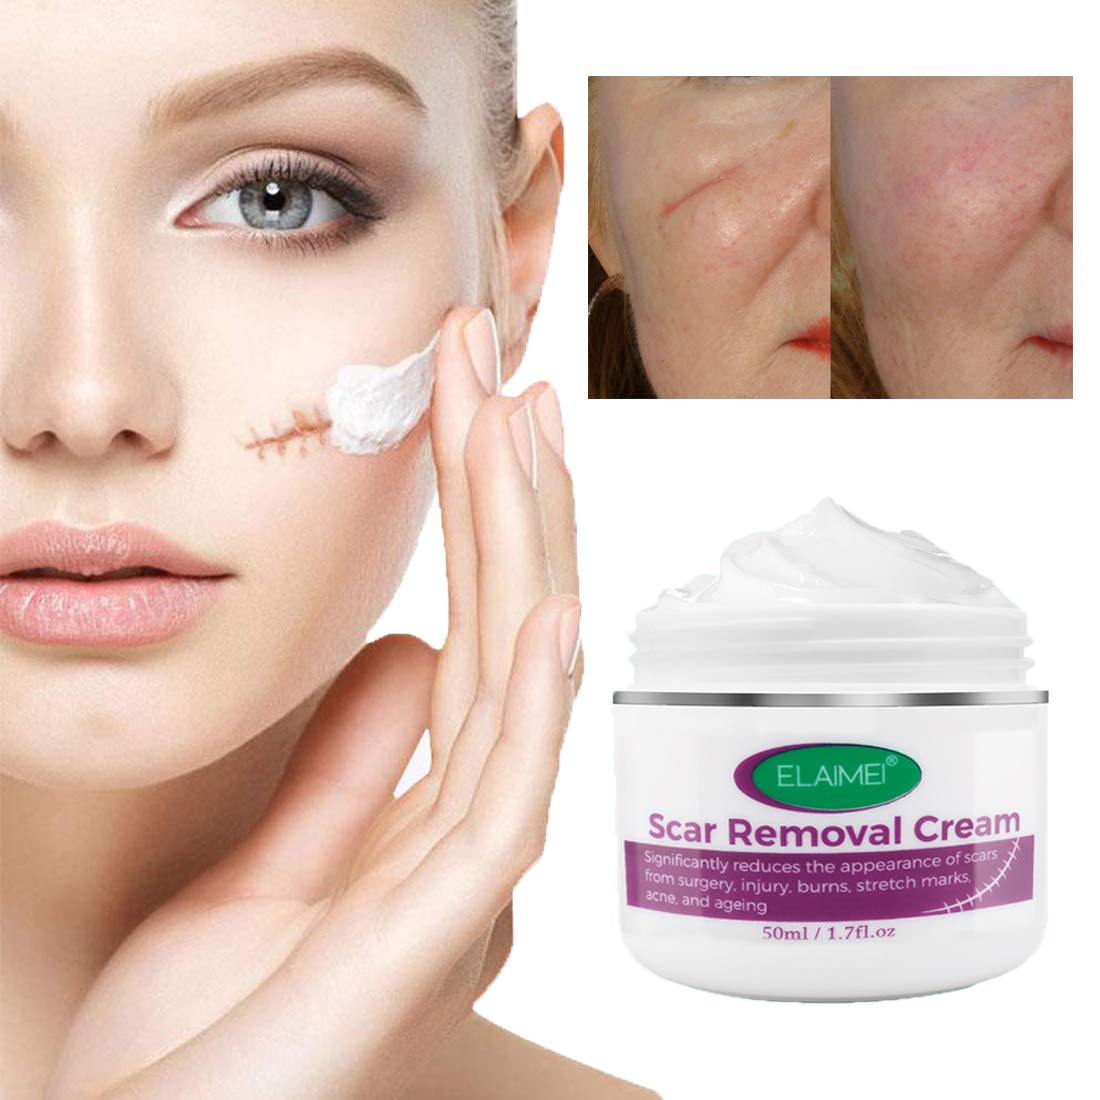 Scar Removal Cream For New and Old Scars,Stretch Mark Removal Gel Ointment, Multiuse Acne Scar Remover Fade Flatten Balm For face,C-Section,Burns, after surgery, Scar tissue soften for Men & Women